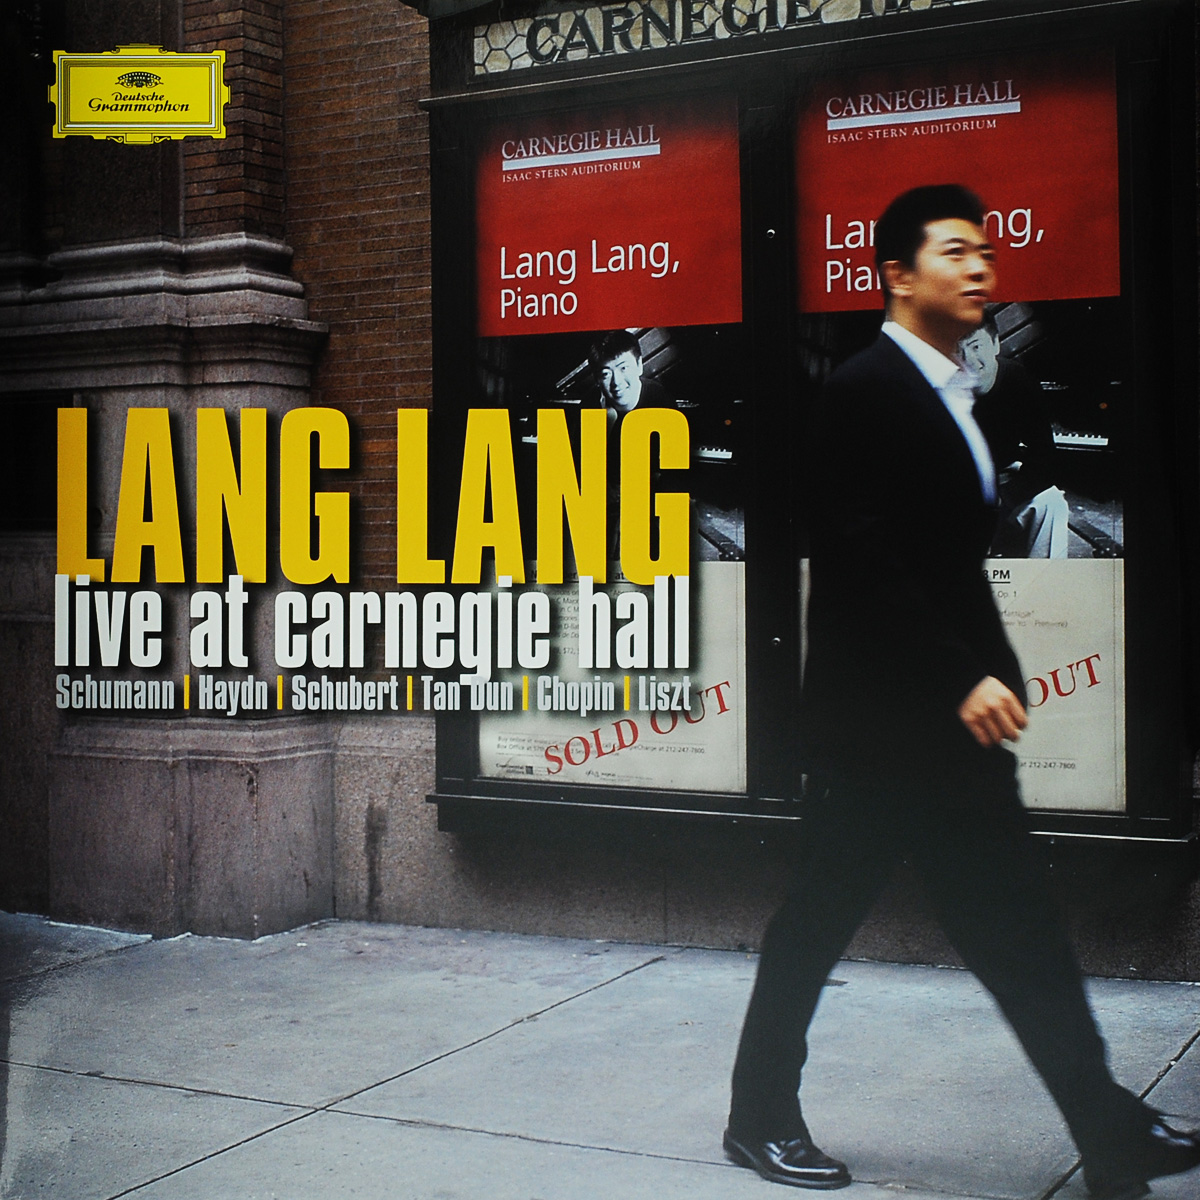 Ланг Ланг Lang Lang. Live At Carnegie Hall (2 LP) ланг ланг lang lang live at carnegie hall 2 lp